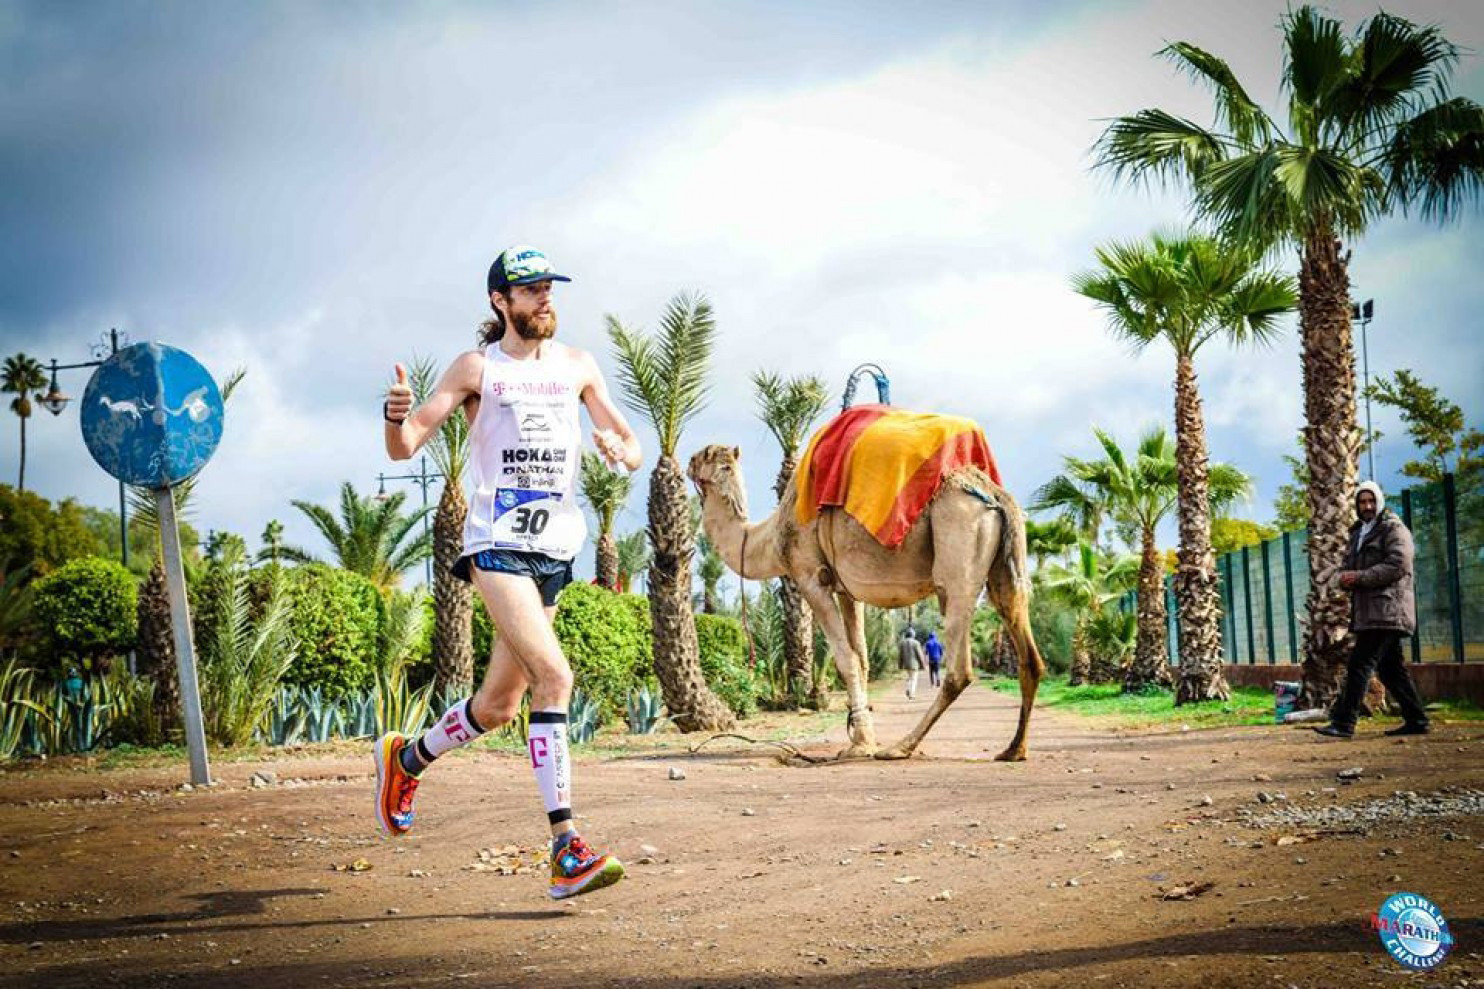 Michael Wardian World Marathon Challenge Record Might Be Unbeatable